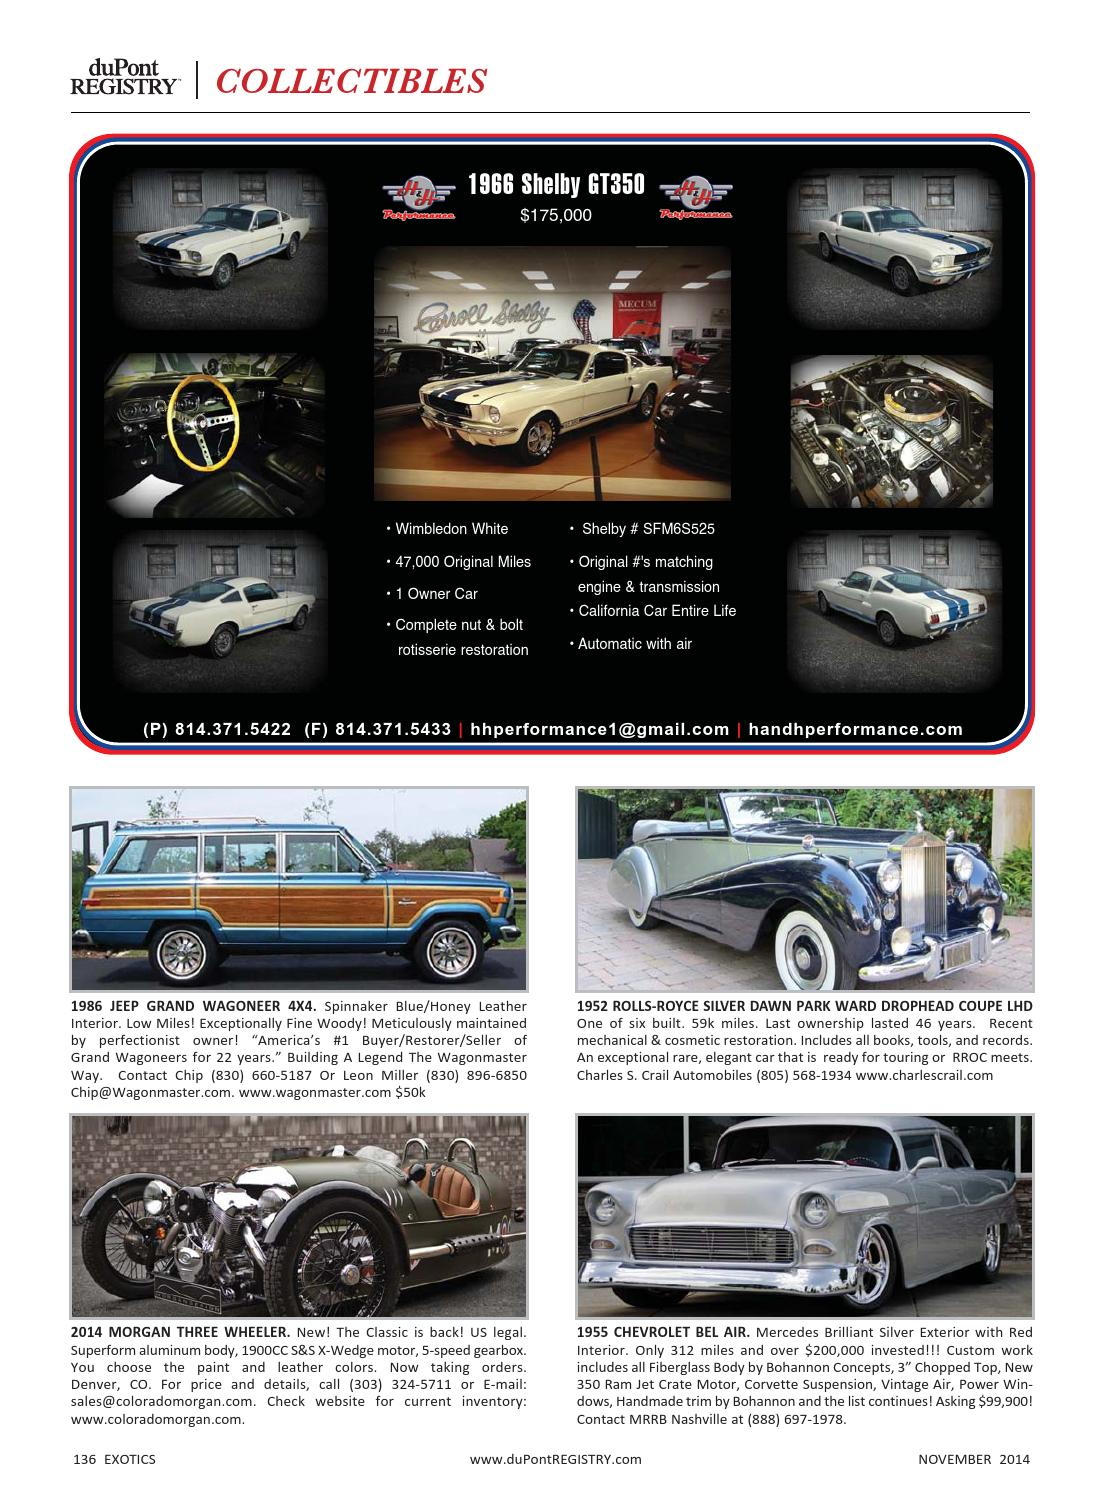 duPontREGISTRY Autos November 2014 by duPont REGISTRY - issuu